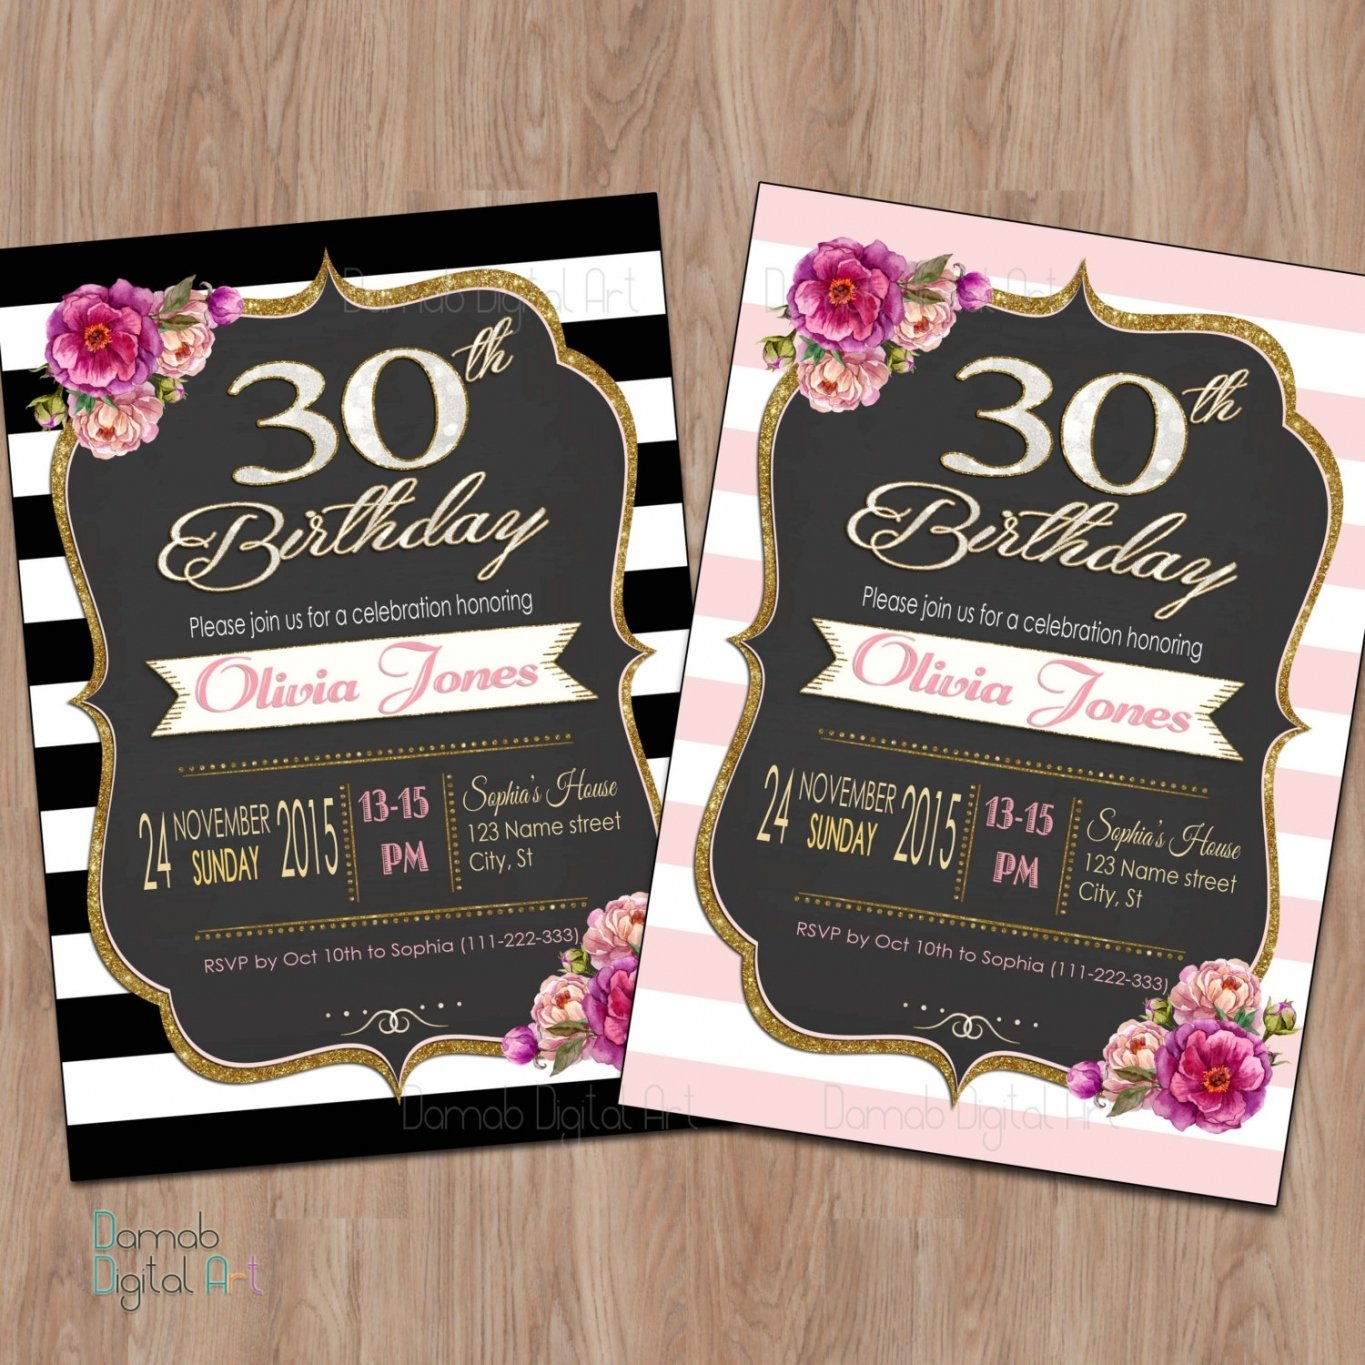 10 Fantastic Ideas For 30Th Birthday For Her tips to create 30th birthday party invitations for her ideas 1